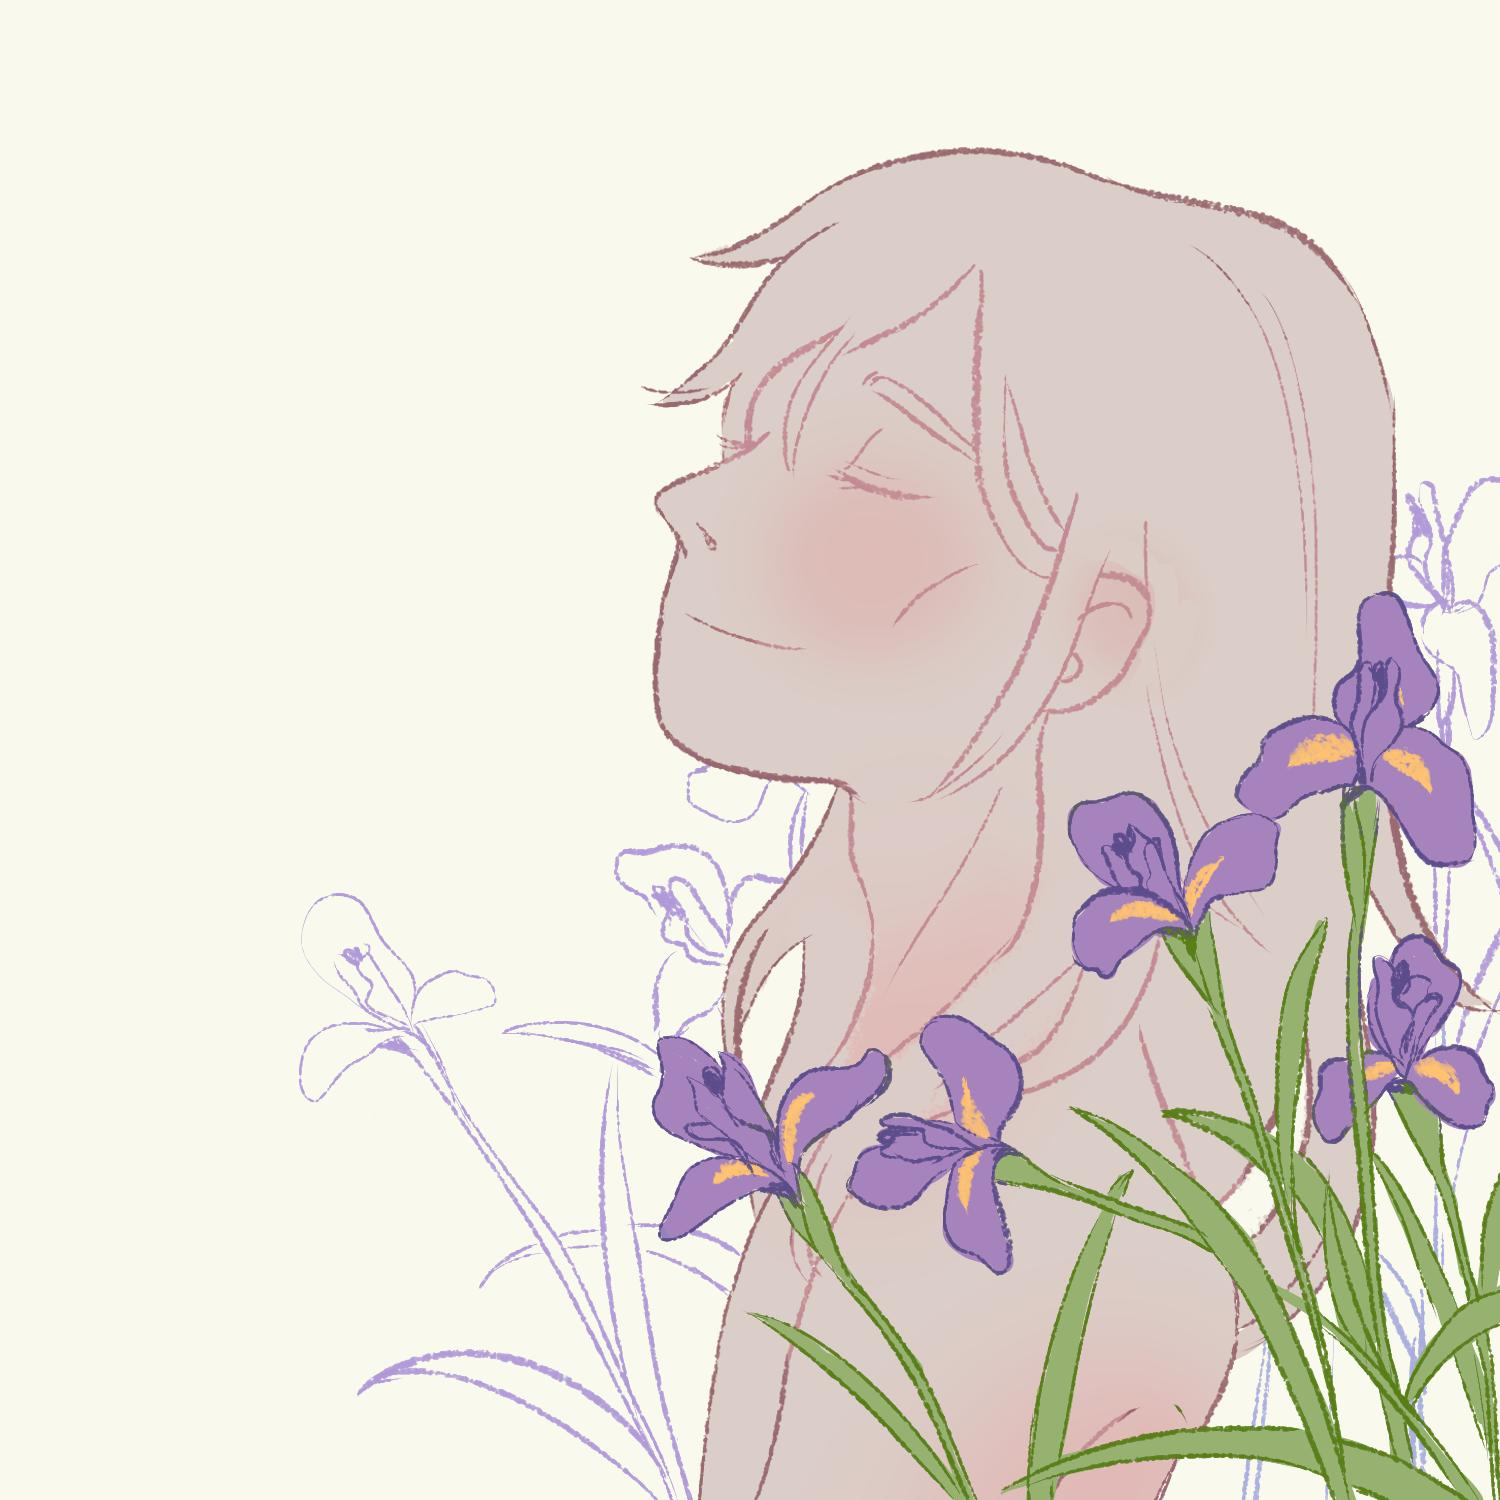 1boy alphonse_elric androgynous arms_at_sides blush cheekbones closed_mouth commentary ear_blush english_commentary eyelashes flower from_side fullmetal_alchemist green_theme grey_background hair_between_eyes happy head_back highres idledee iris_(flower) leaf light_smile lineart long_hair male_focus nude profile purple_flower purple_theme simple_background skinny spot_color upper_body